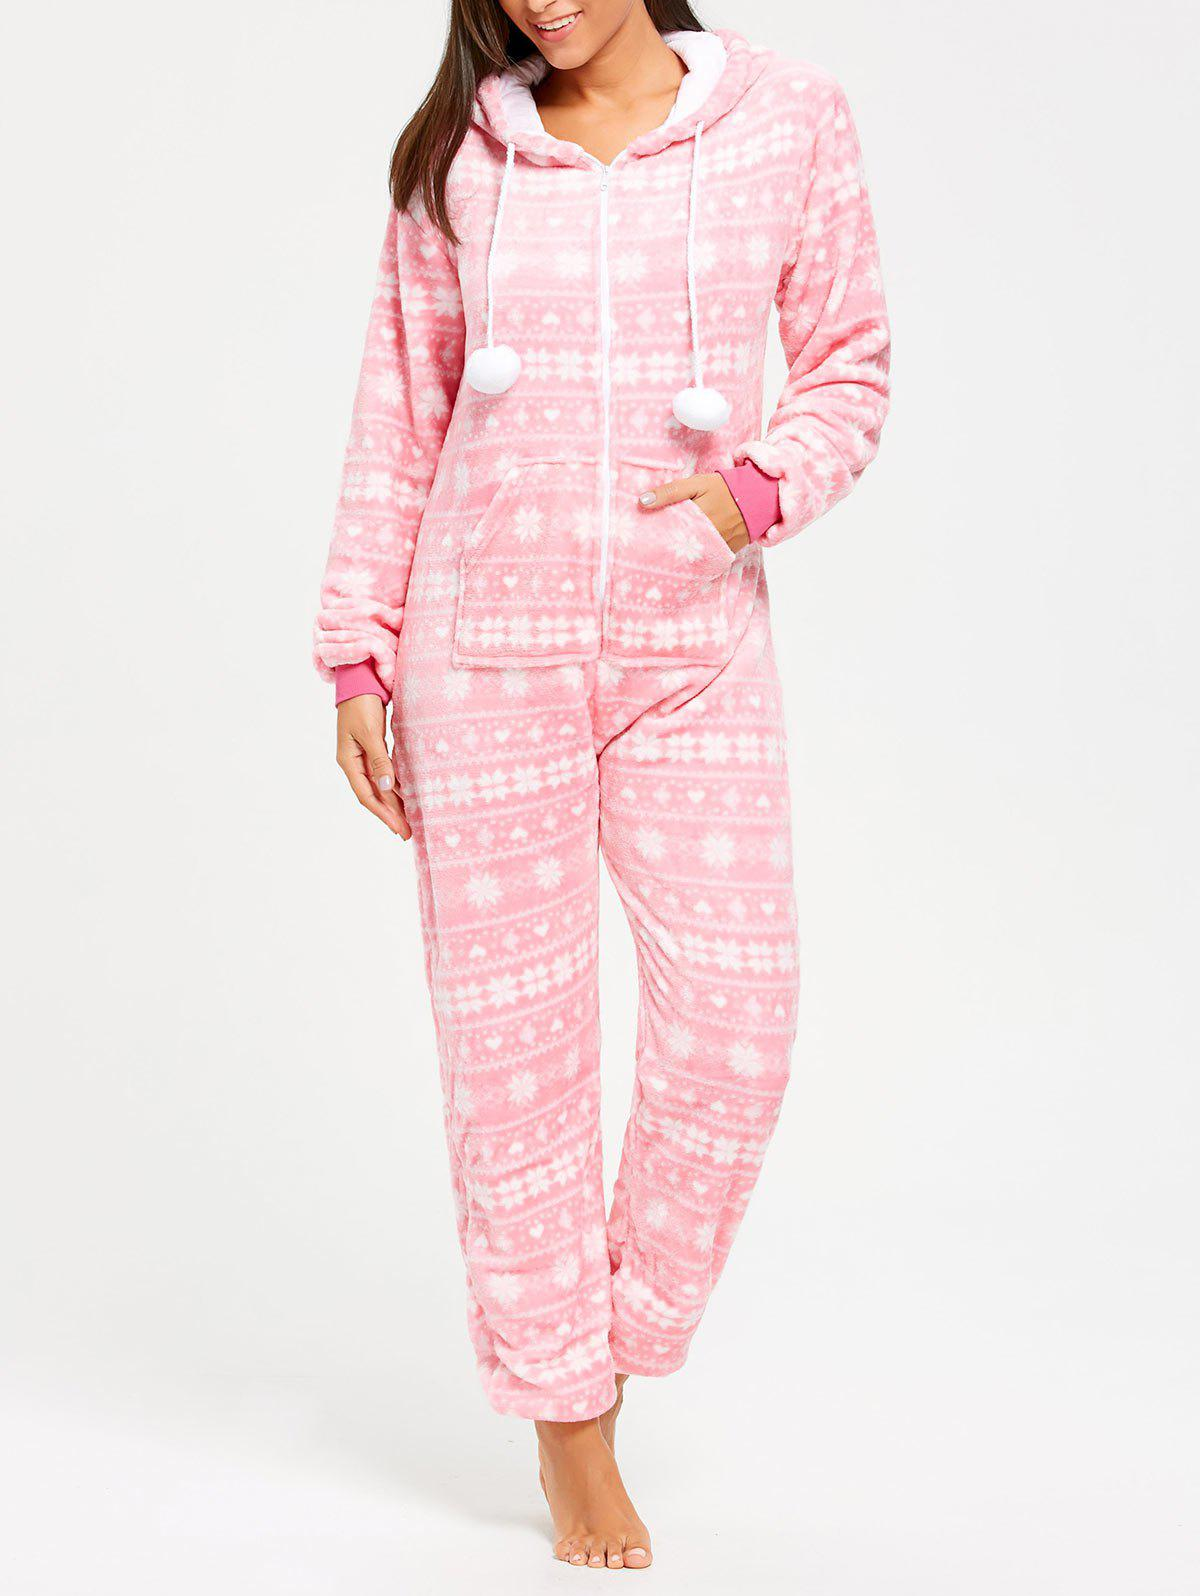 Buy Hooded Zip Fleece Jumpsuit Sleepwear